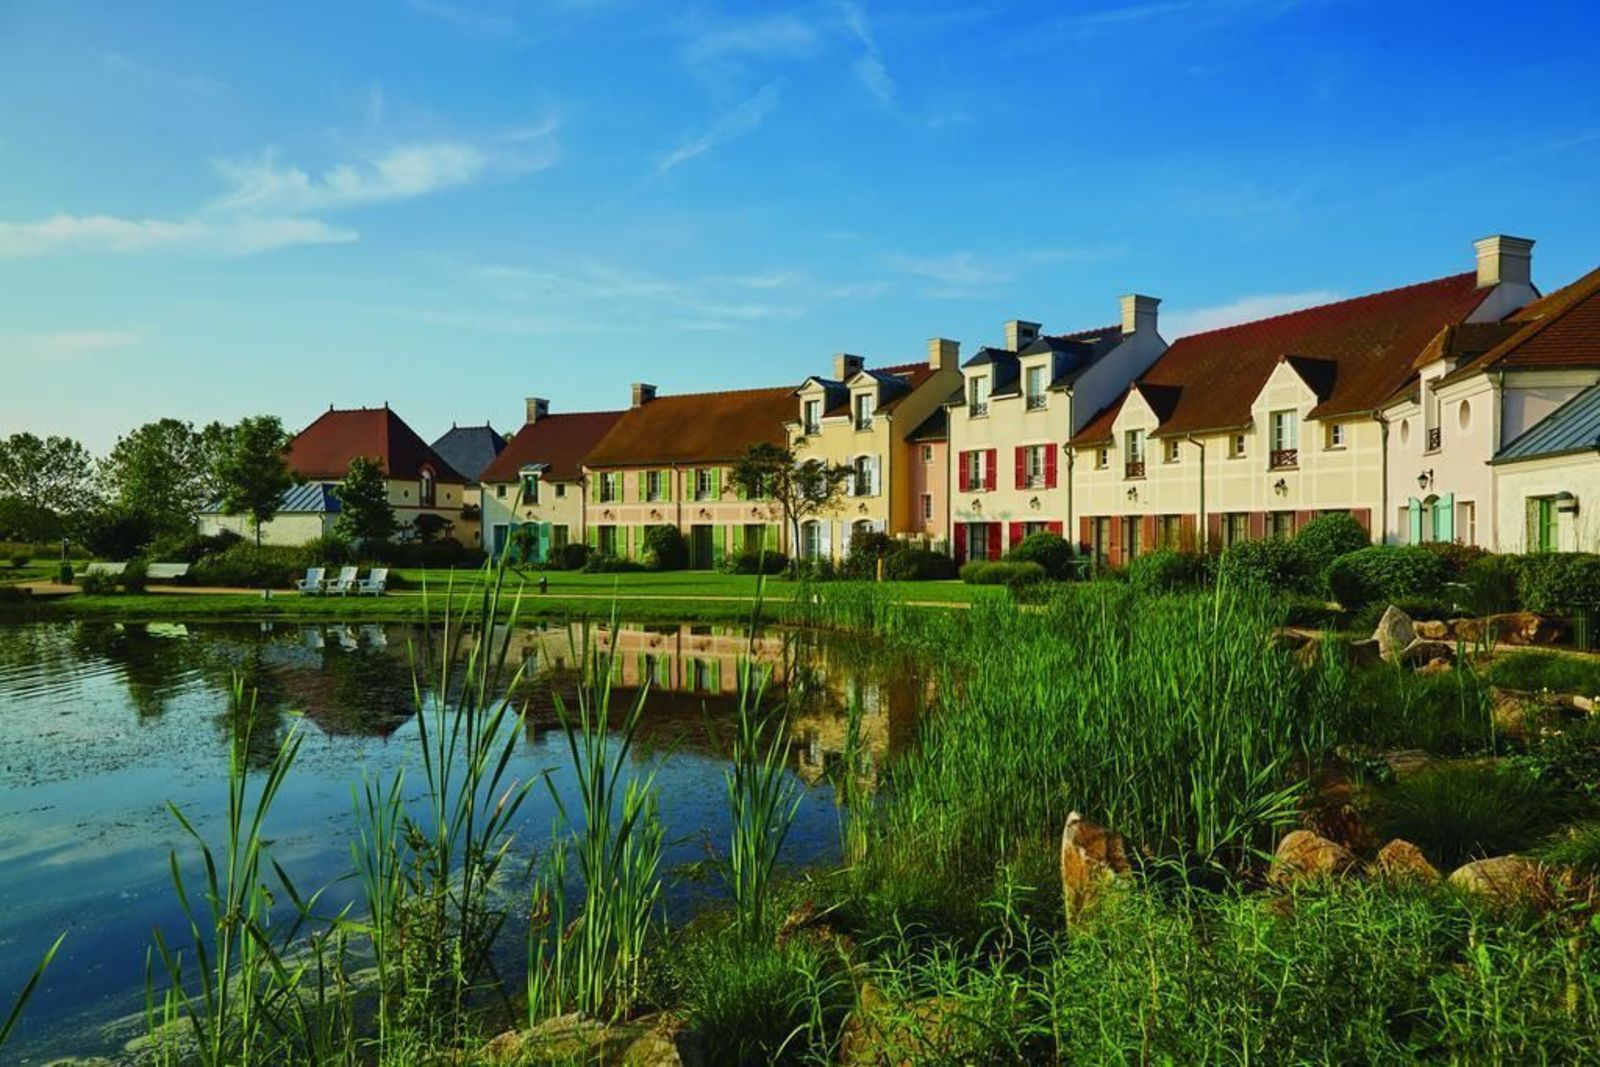 Marriott's Village d'ile-de-France, Estudio